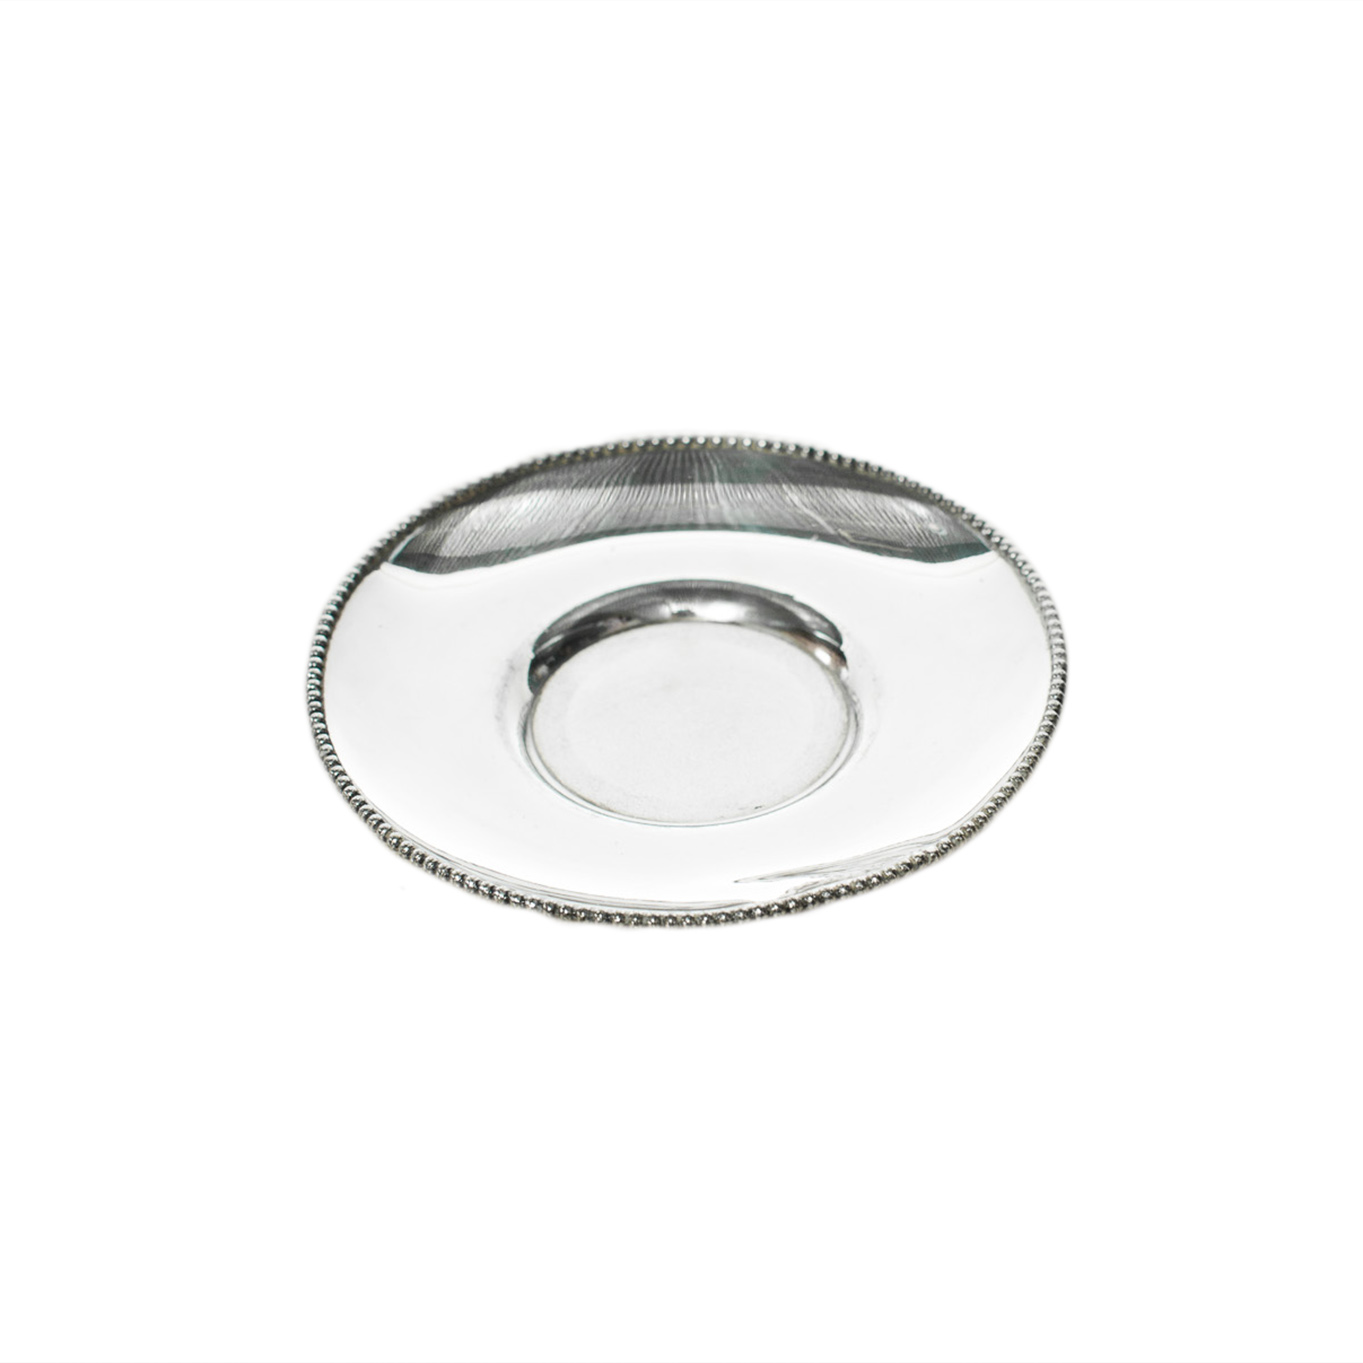 Silver Teacup Plate